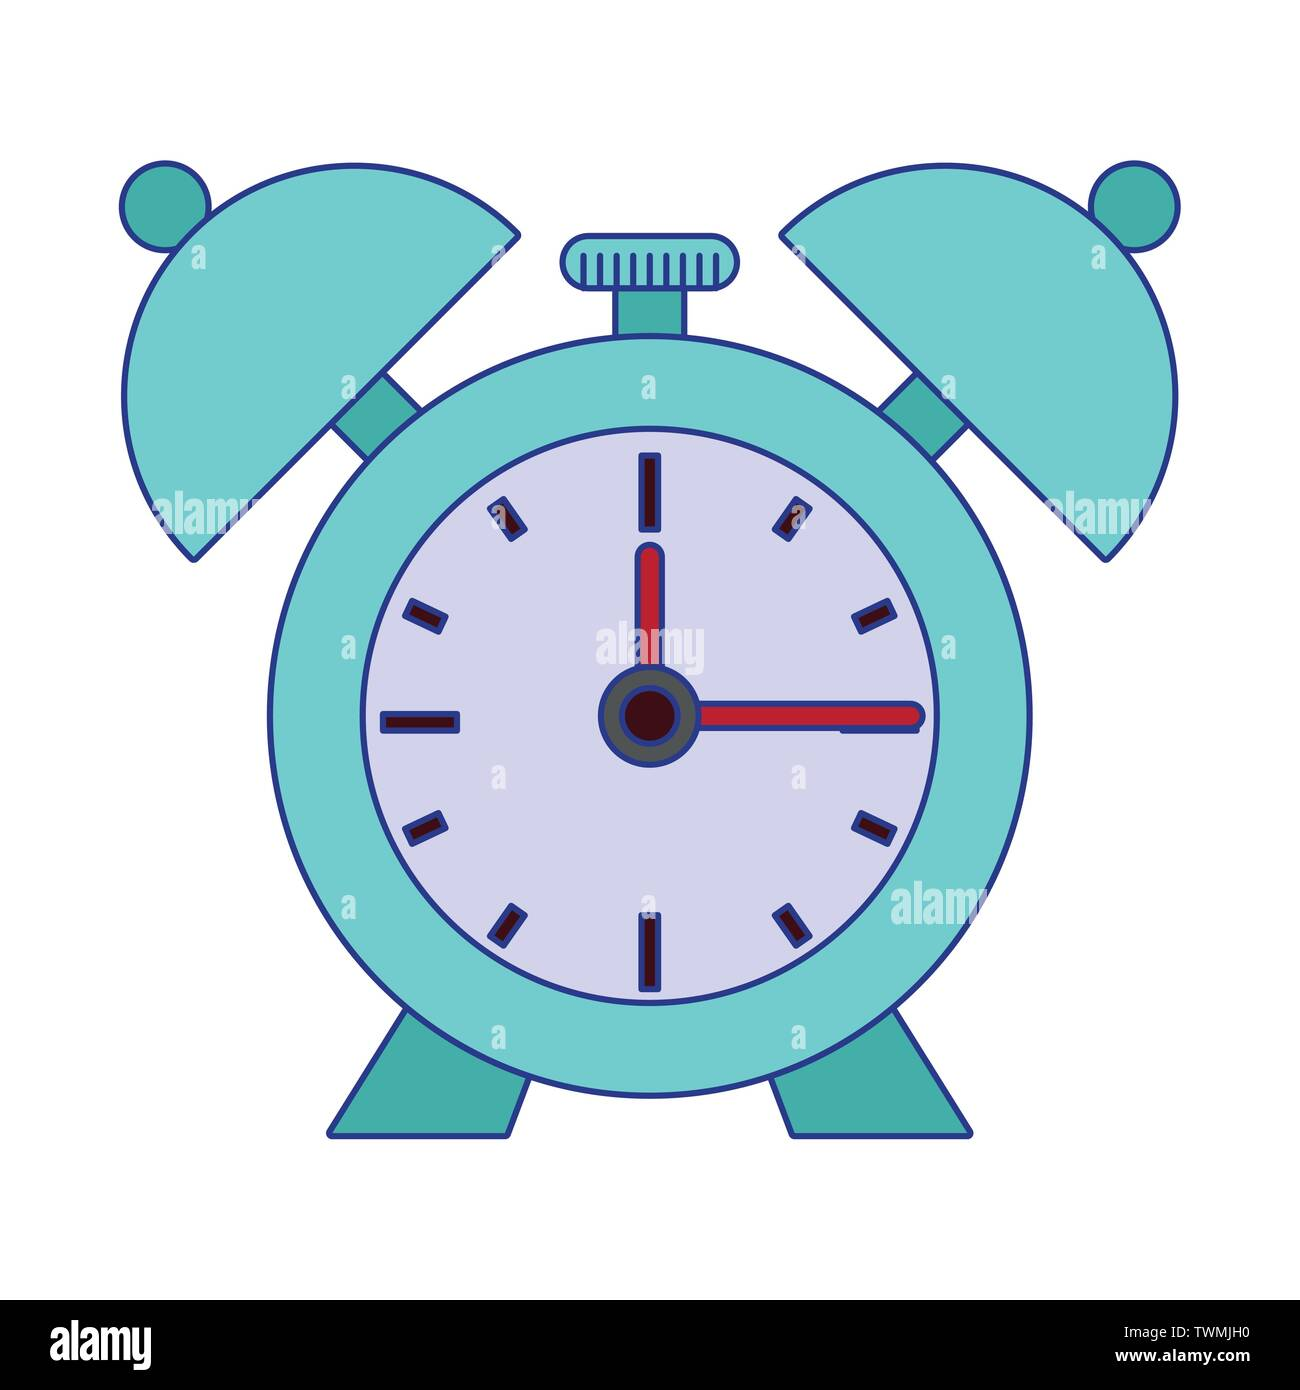 Alarm clock with bells isolated symbol blue lines - Stock Image